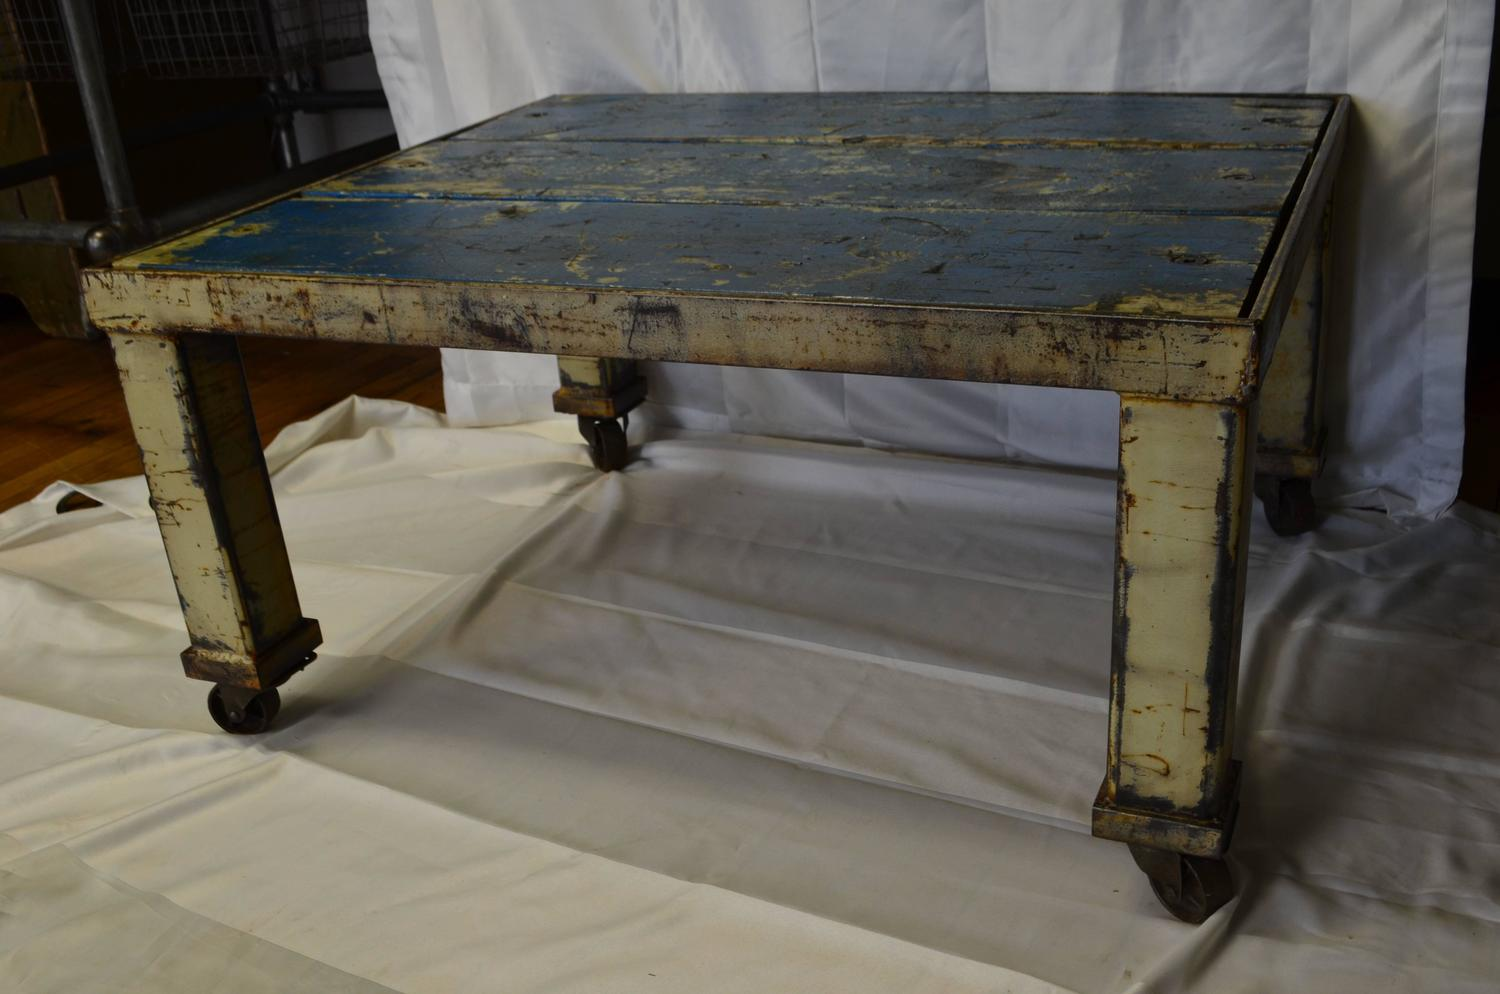 Coffee Table With Wooden Top Inset Into Industrial Steel Frame On